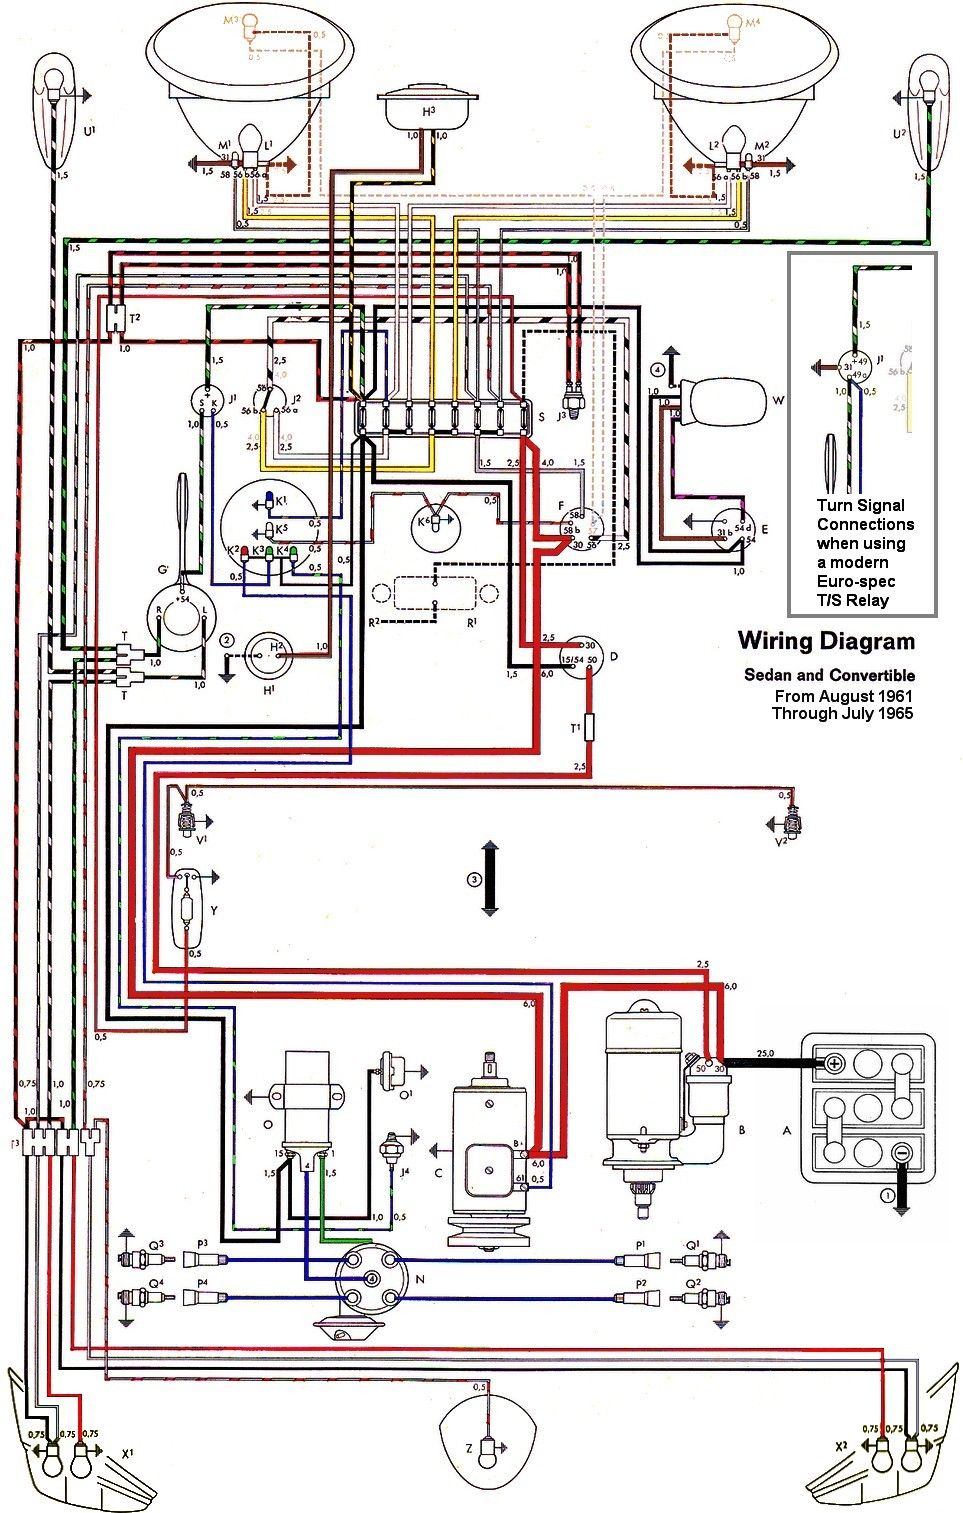 Wiring diagram VW beetle sedan and convertible 1961-1965 ... on